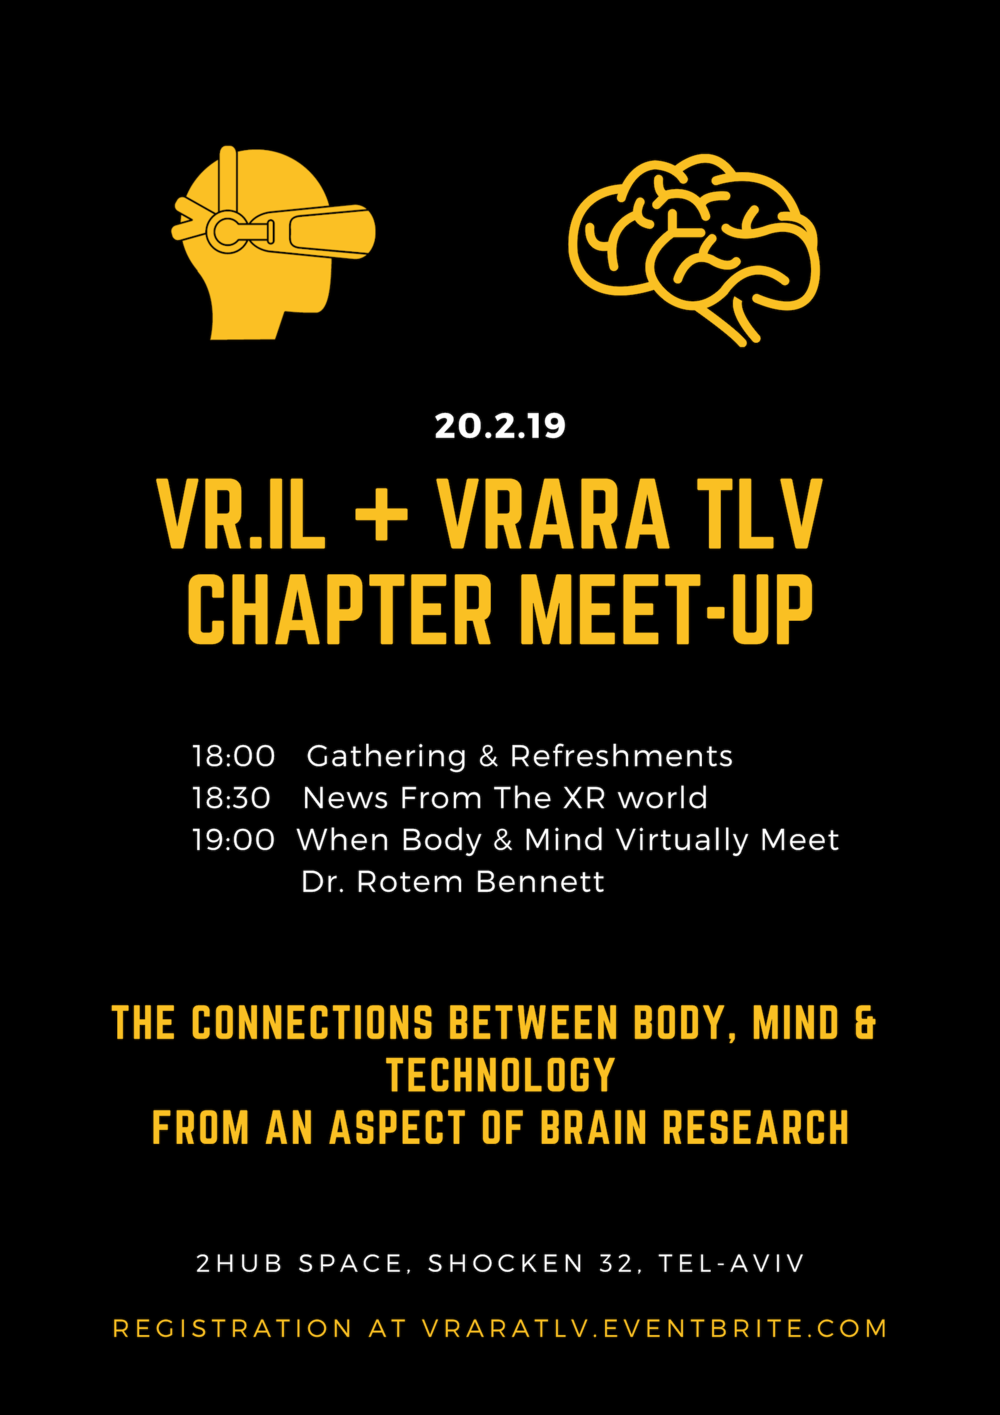 VRARA TLV Chapter meet-up 20.2.19.png